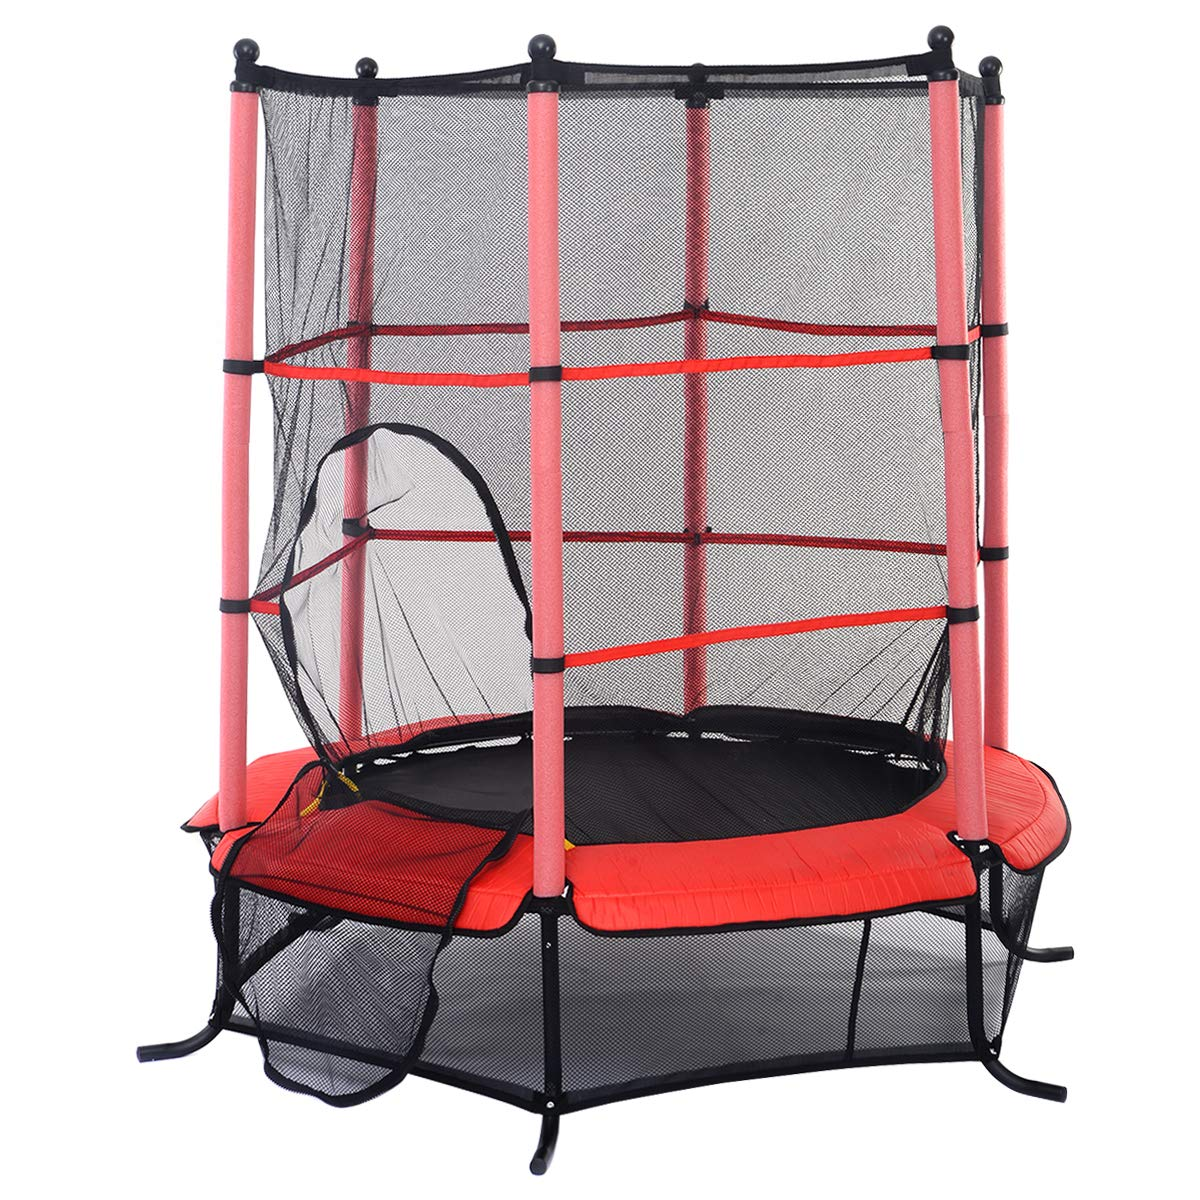 GYMAX Mini Trampoline, 55'' Round Rebounder Exercise Trampoline for Kids with Safety Pad Enclosure Combo (Red)